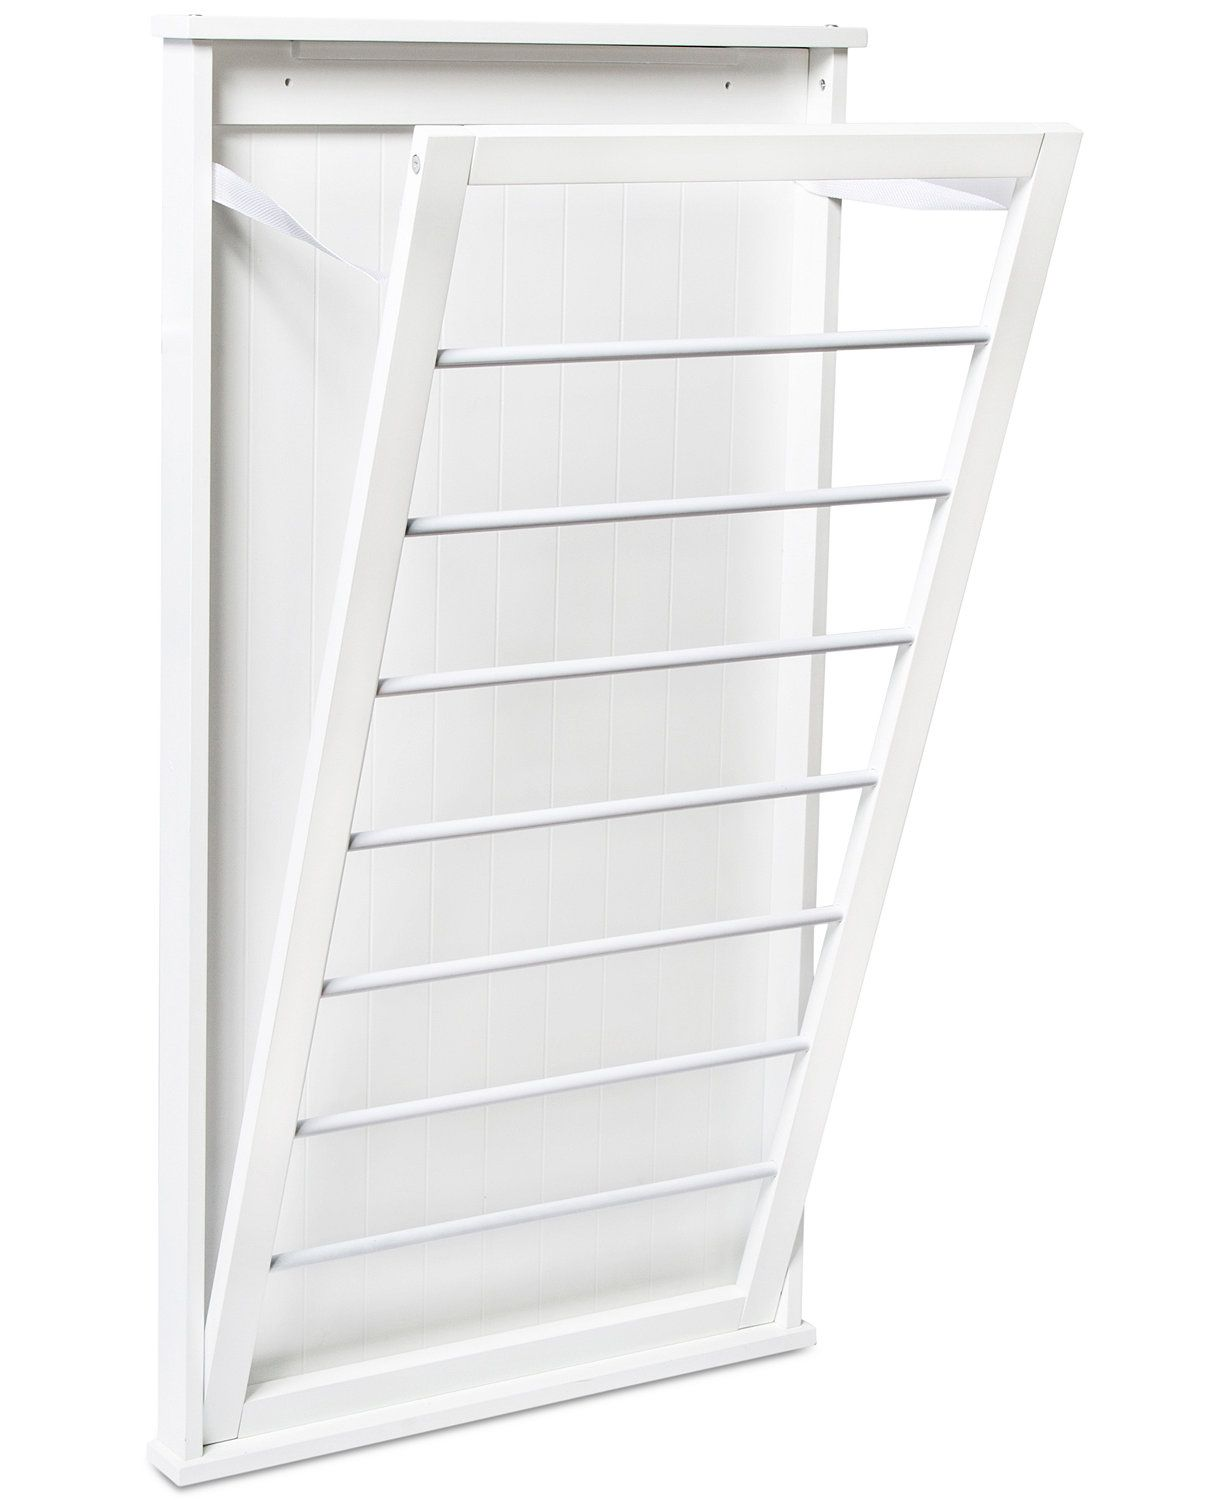 Vertical Wall Mount Drying Rack Wall Mounted Clothes Drying Rack